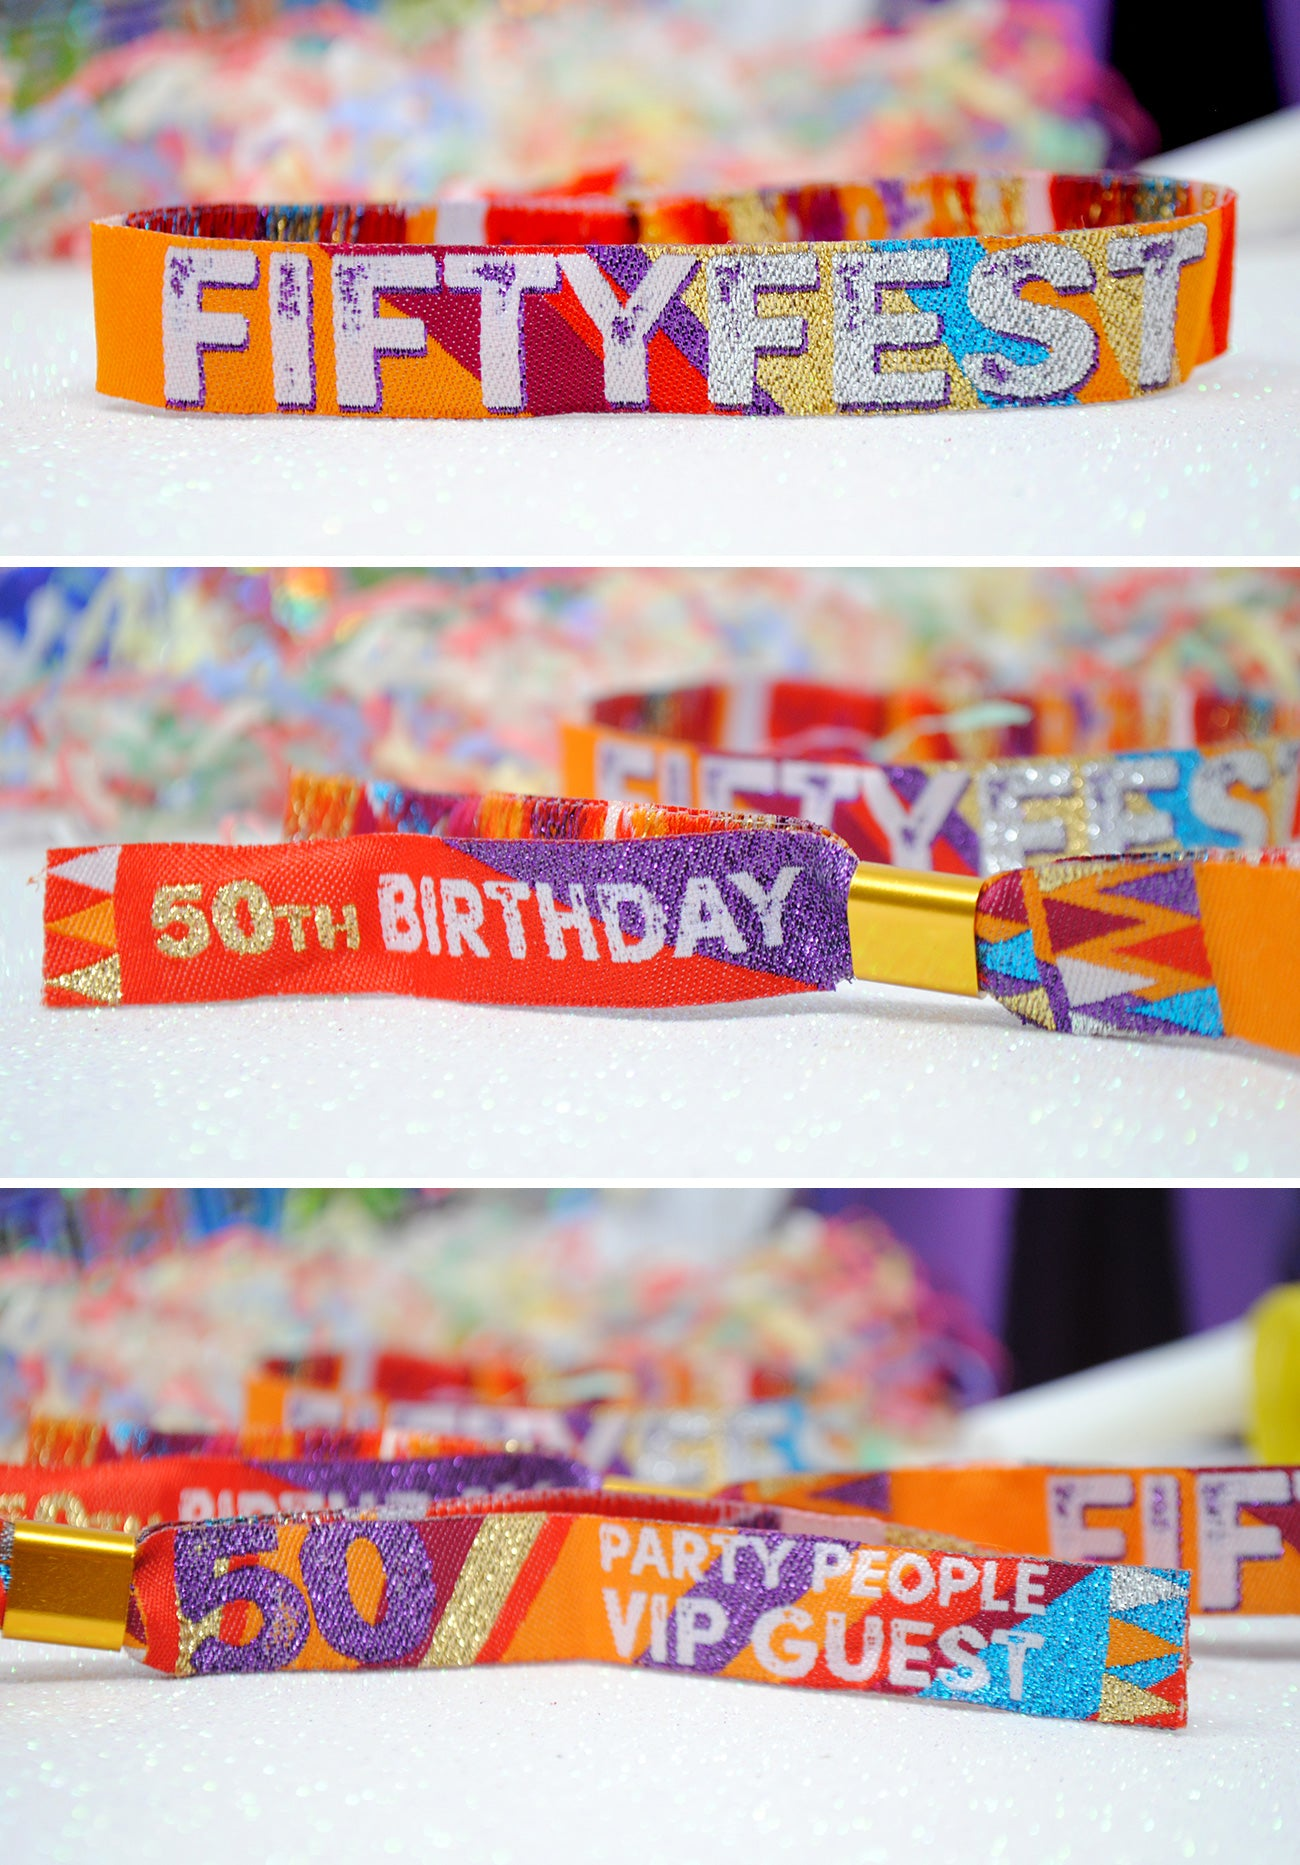 50 fifty fest festival birthday part -wristbands